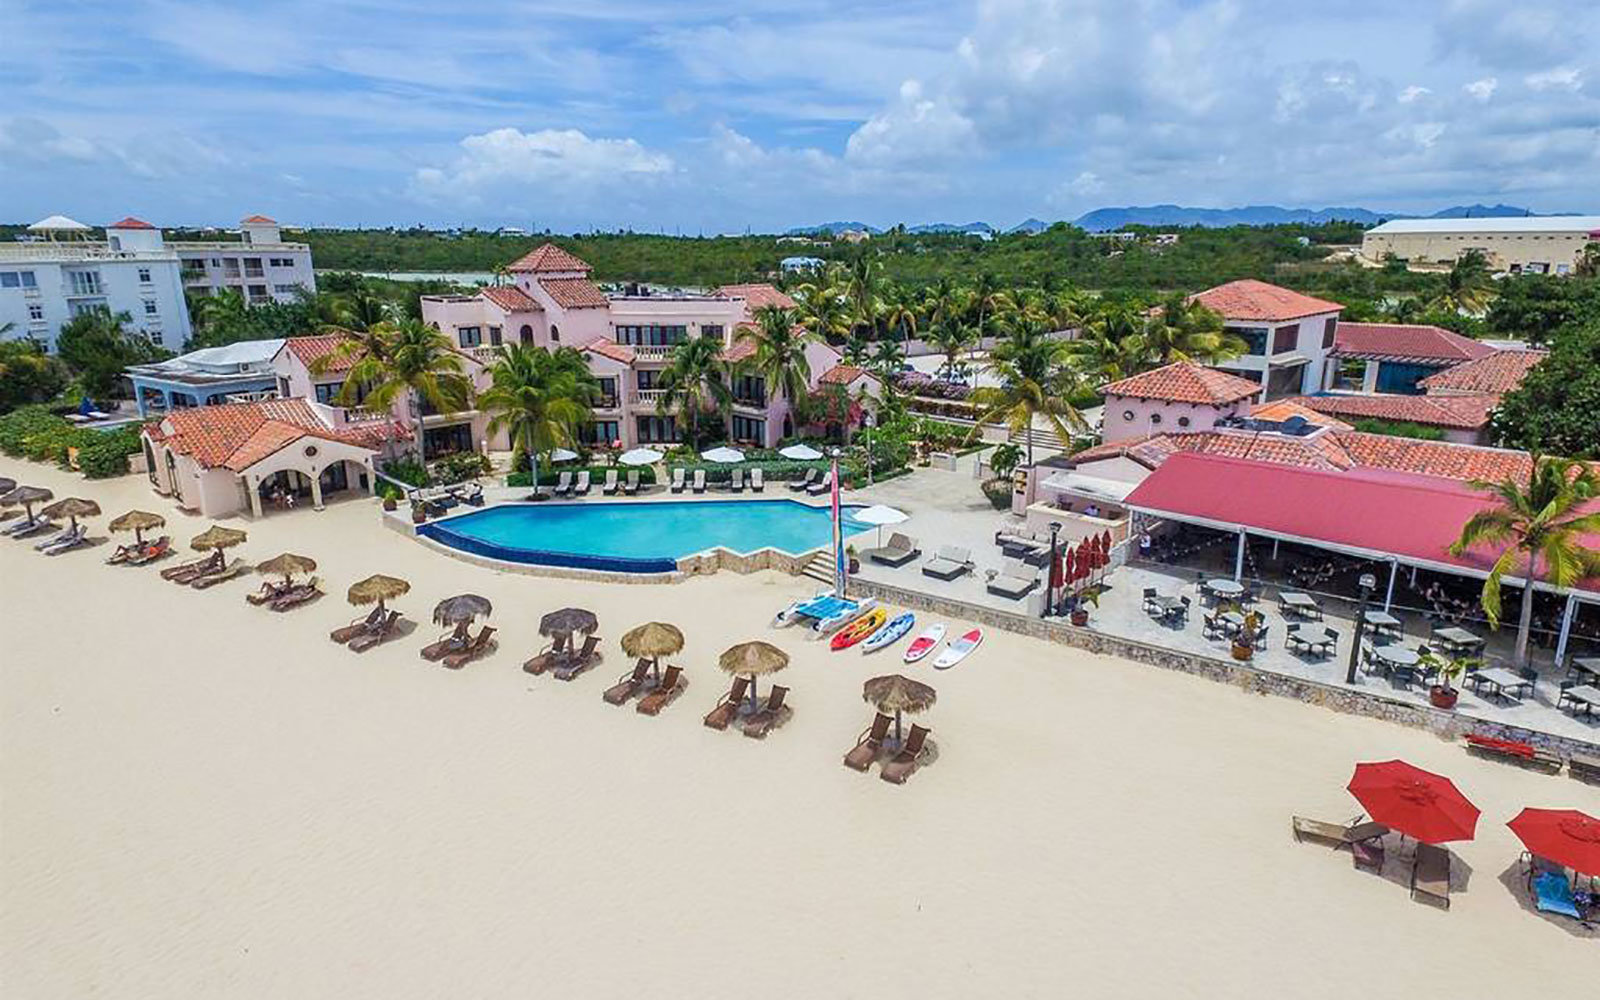 Frangipani Beach Resort — Meads Bay, Anguilla